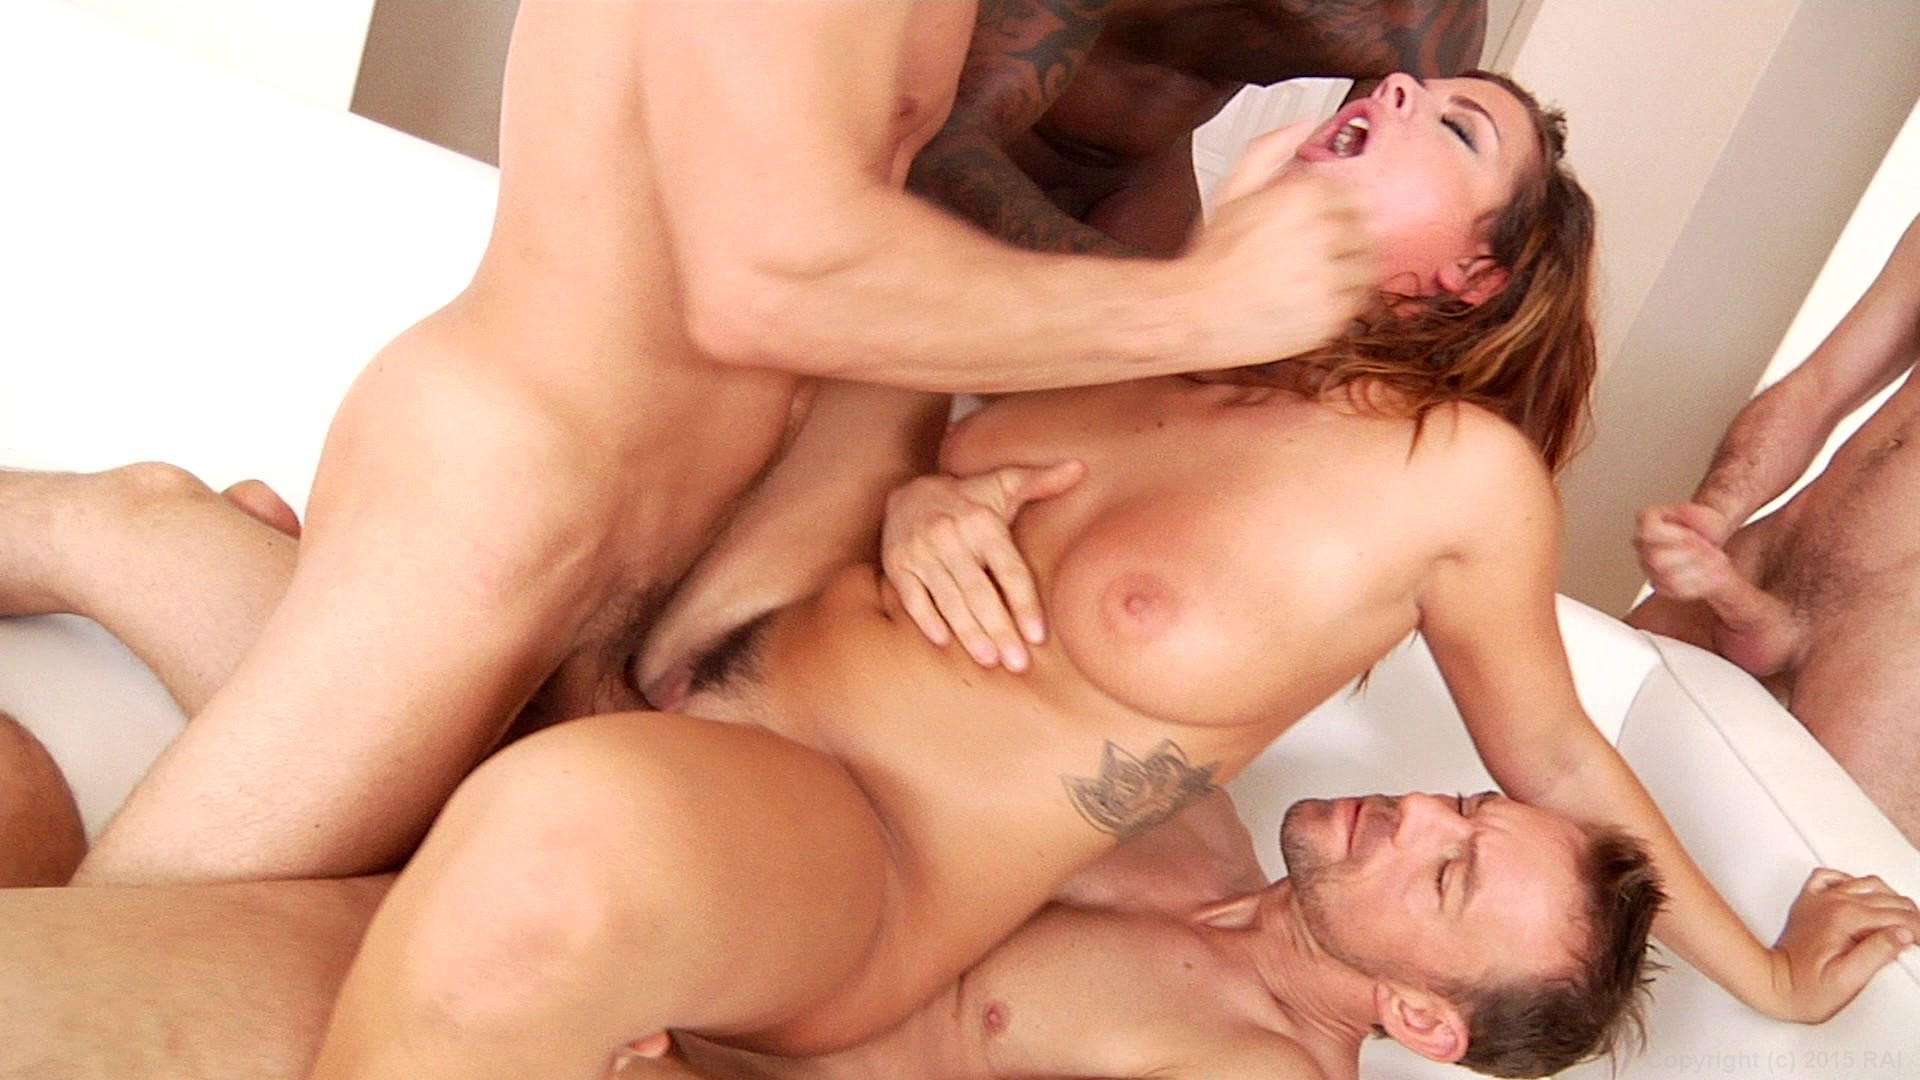 Scene with Keisha Grey - image 16 out of 20